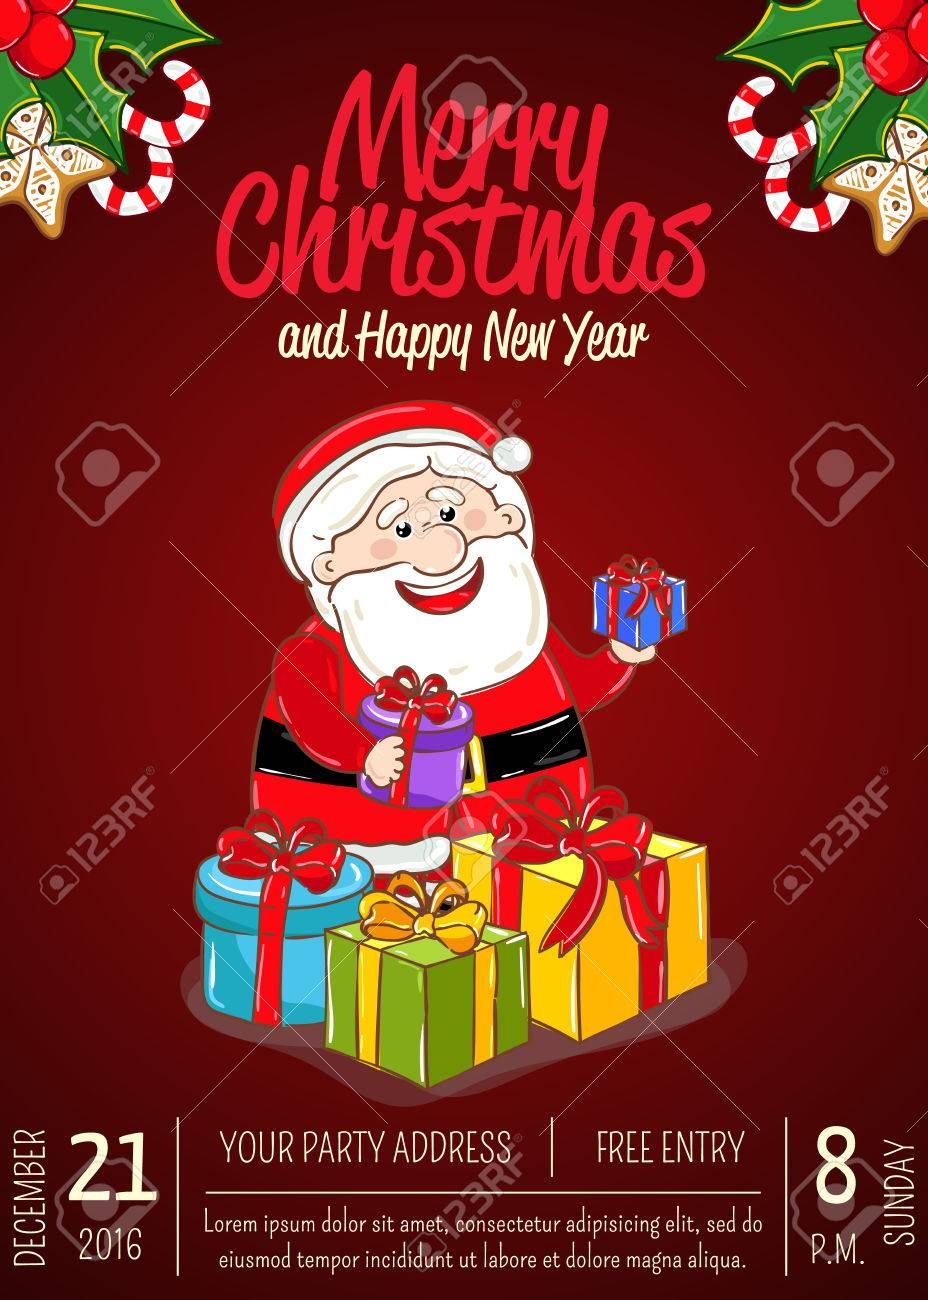 Christmas Party Time Images.Christmas Party Promo Poster With Date And Time Cheerful Santa